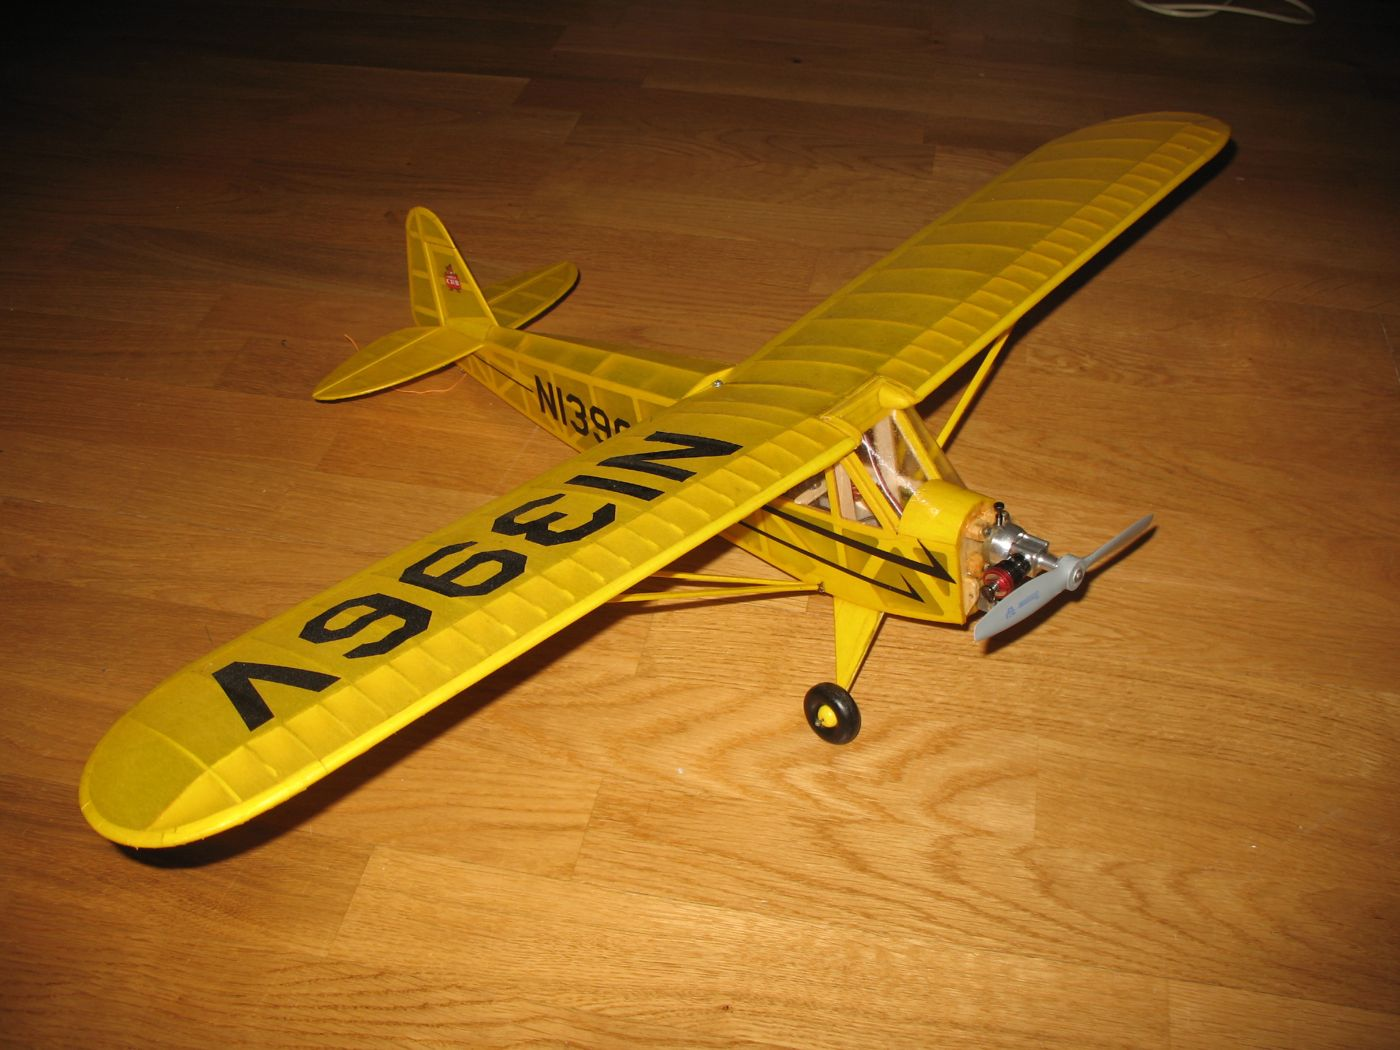 HELP! Looking for a ARF R/C plane that uses a COX 049 or 020 Img_1218